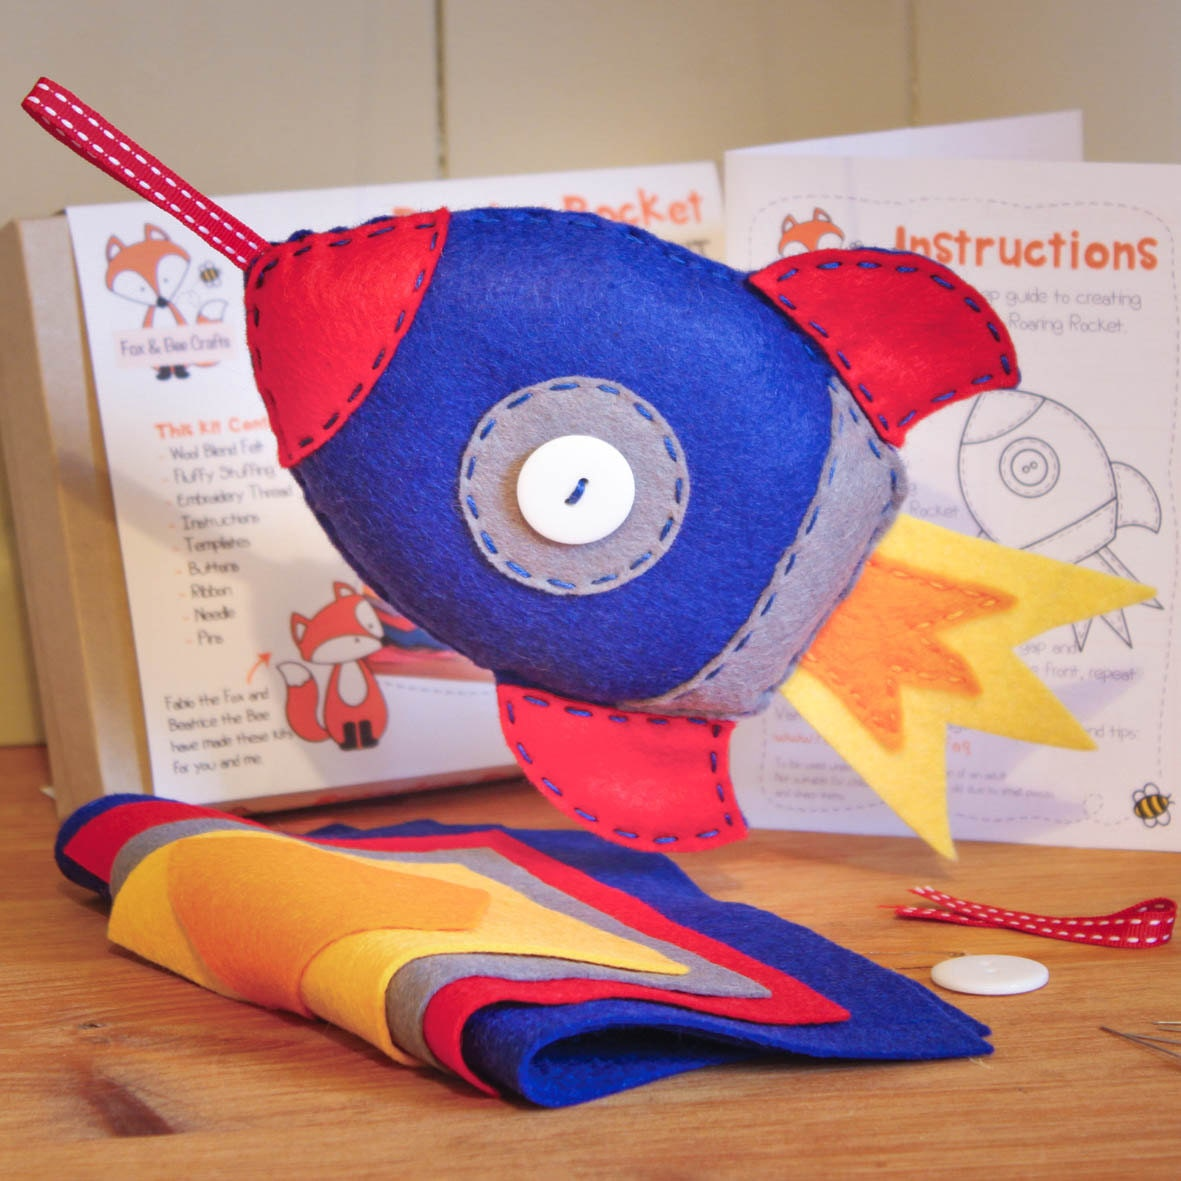 roaring rocket felt sewing kit perfect gift for kids and adults